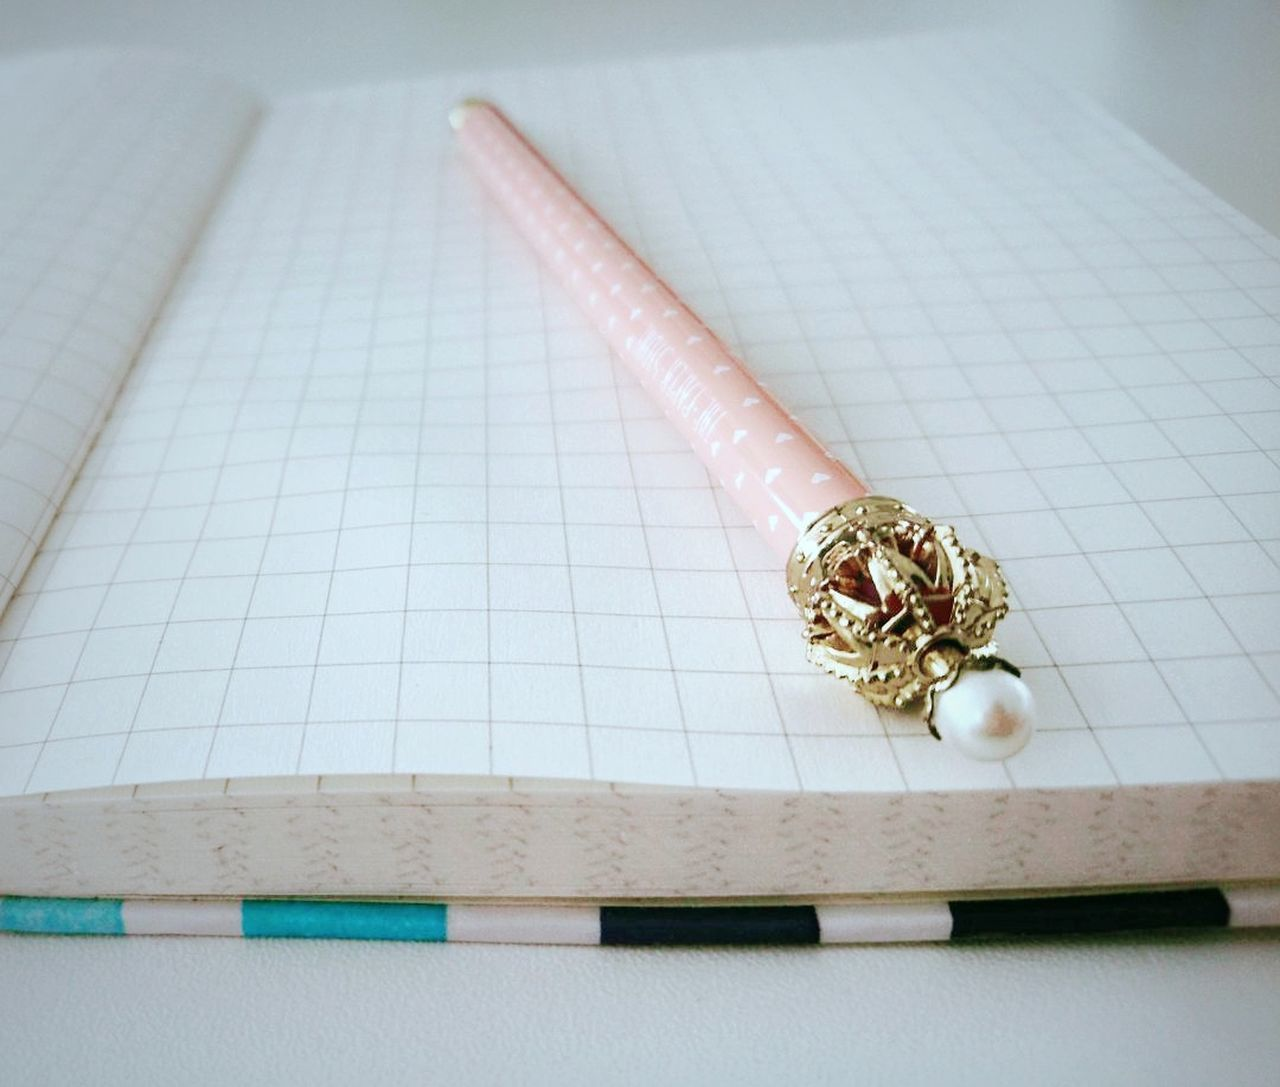 Pen Taking Notes Cute Queen Pearl Elegant Design Jot Down Blank Page